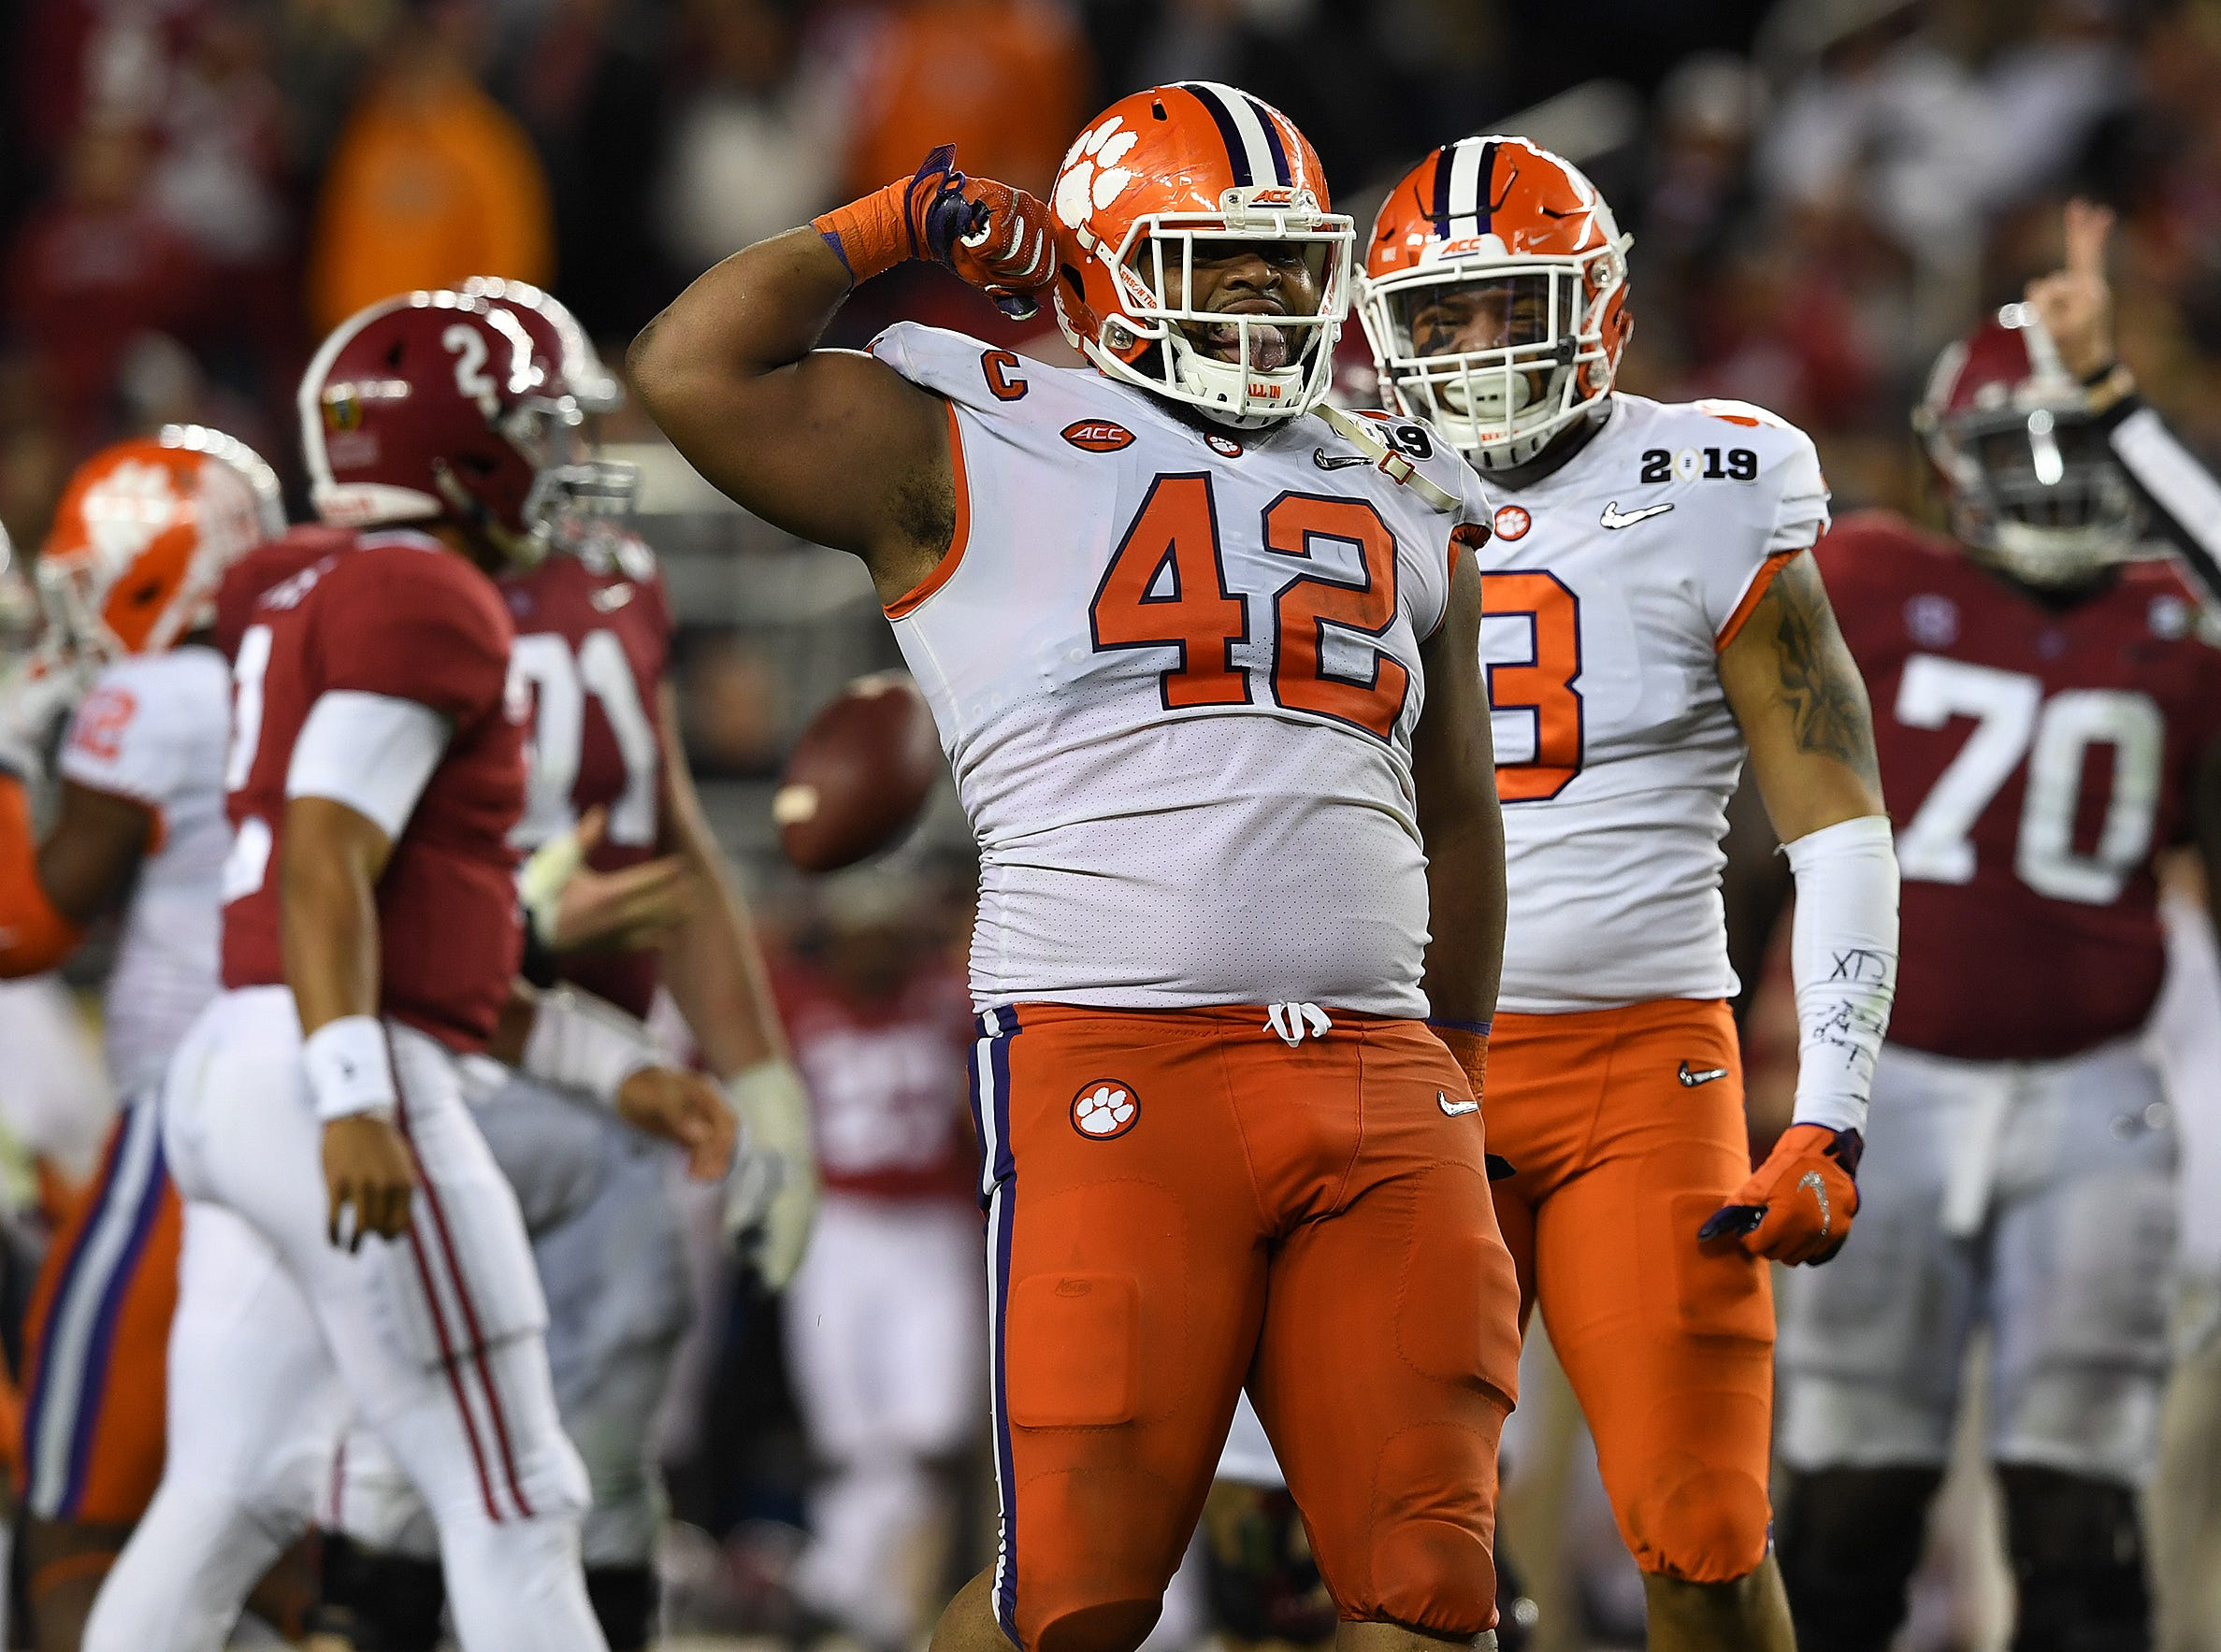 Clemson defensive lineman Christian Wilkins (42) reacts after stopping Alabama quarterback Jalen Hurts (2) during the 2nd half of the College Football National Championship at Levi's Stadium in Santa Clara, CA Monday, January 7, 2019.